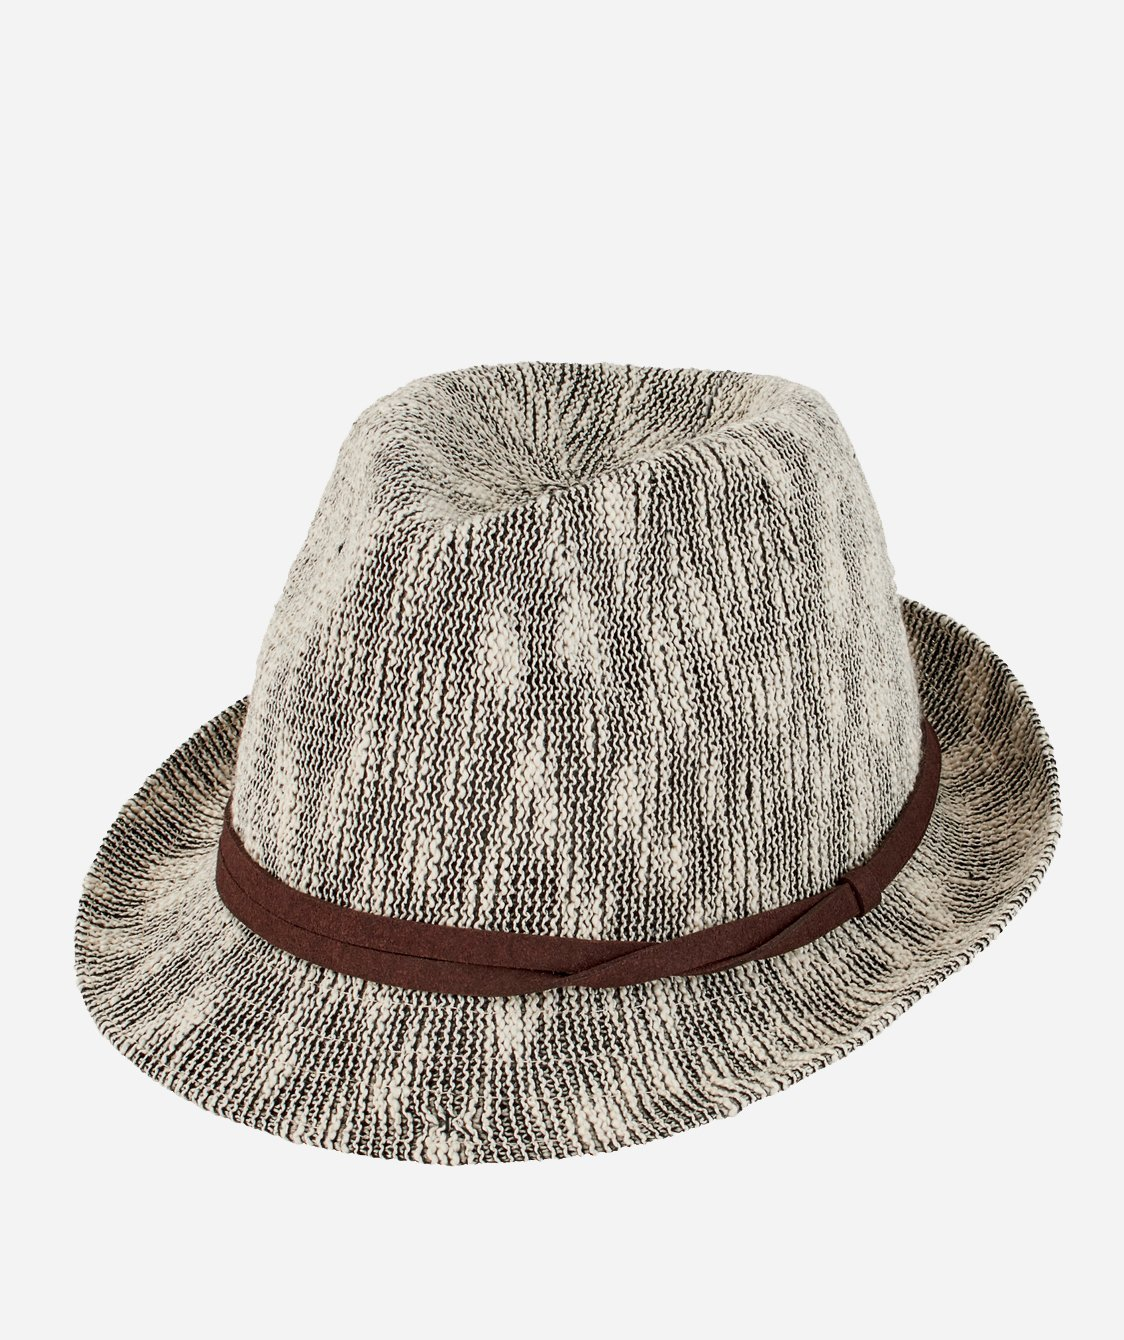 332d88366d5 Womens Knitted Fedora - San Diego Hat Company